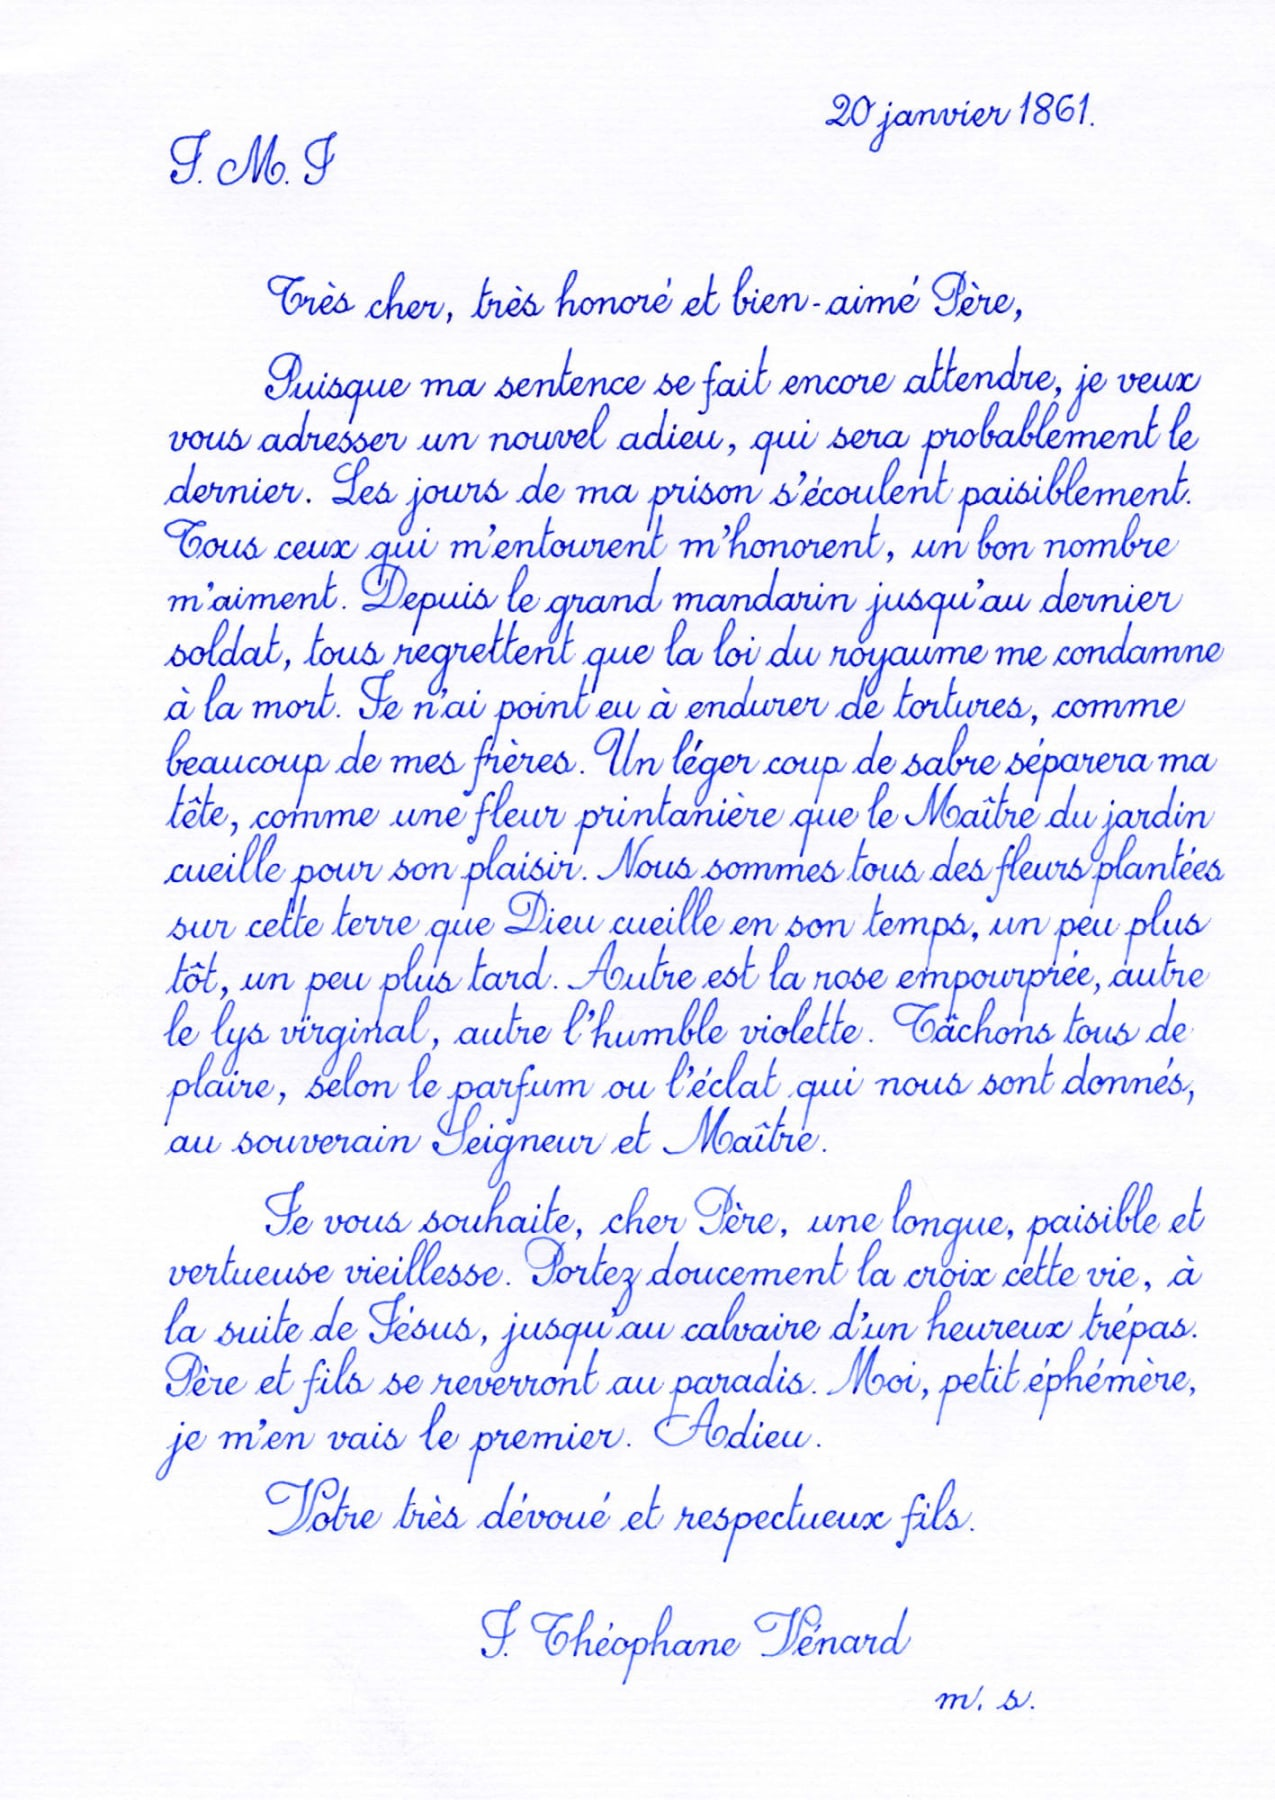 A handwritten letter of two paragraphs, addressed to J. Theophane Vernard, written with blue ink in cursive.